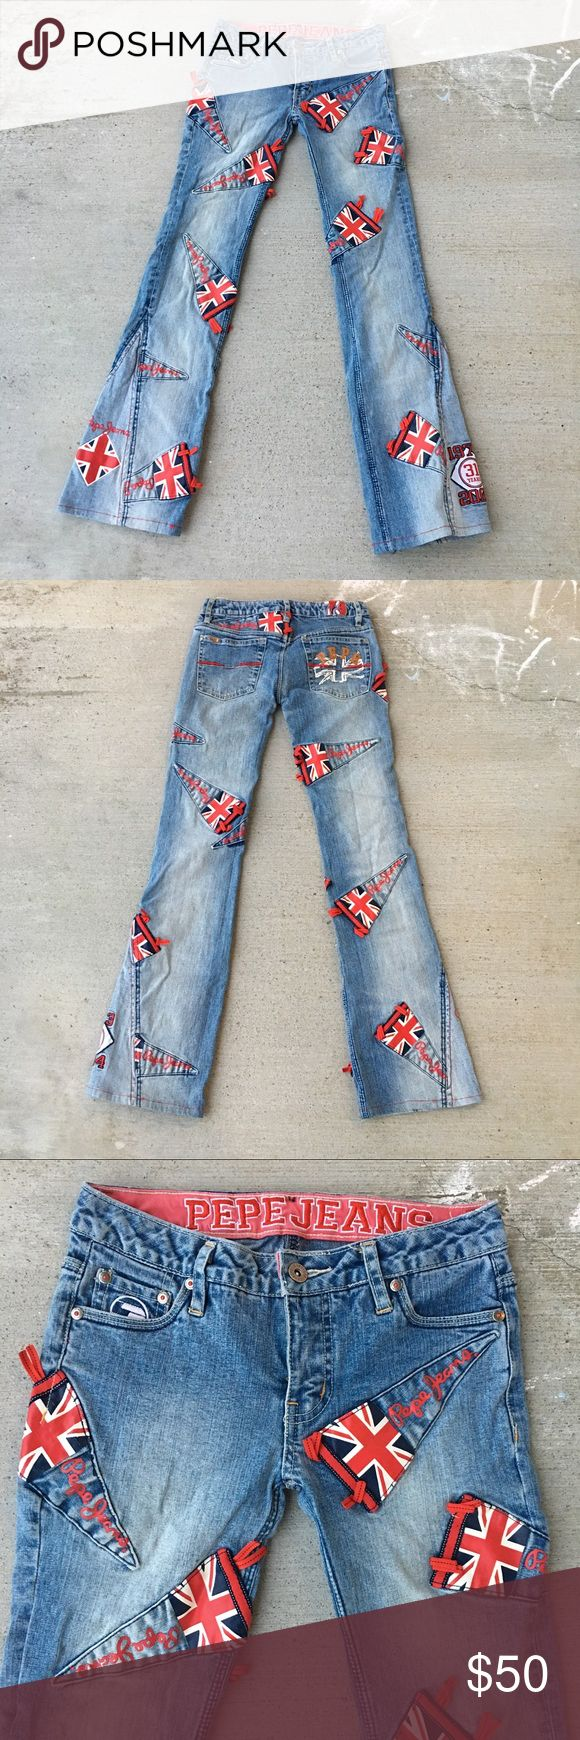 Pepe Jeans Sz 24 Pepe Jeans Size 24 London, Great Britain, Europe  #pepe #pepejeans #british #britishflag #jeans #unique #rare #posh #love Pepe Jeans Jeans